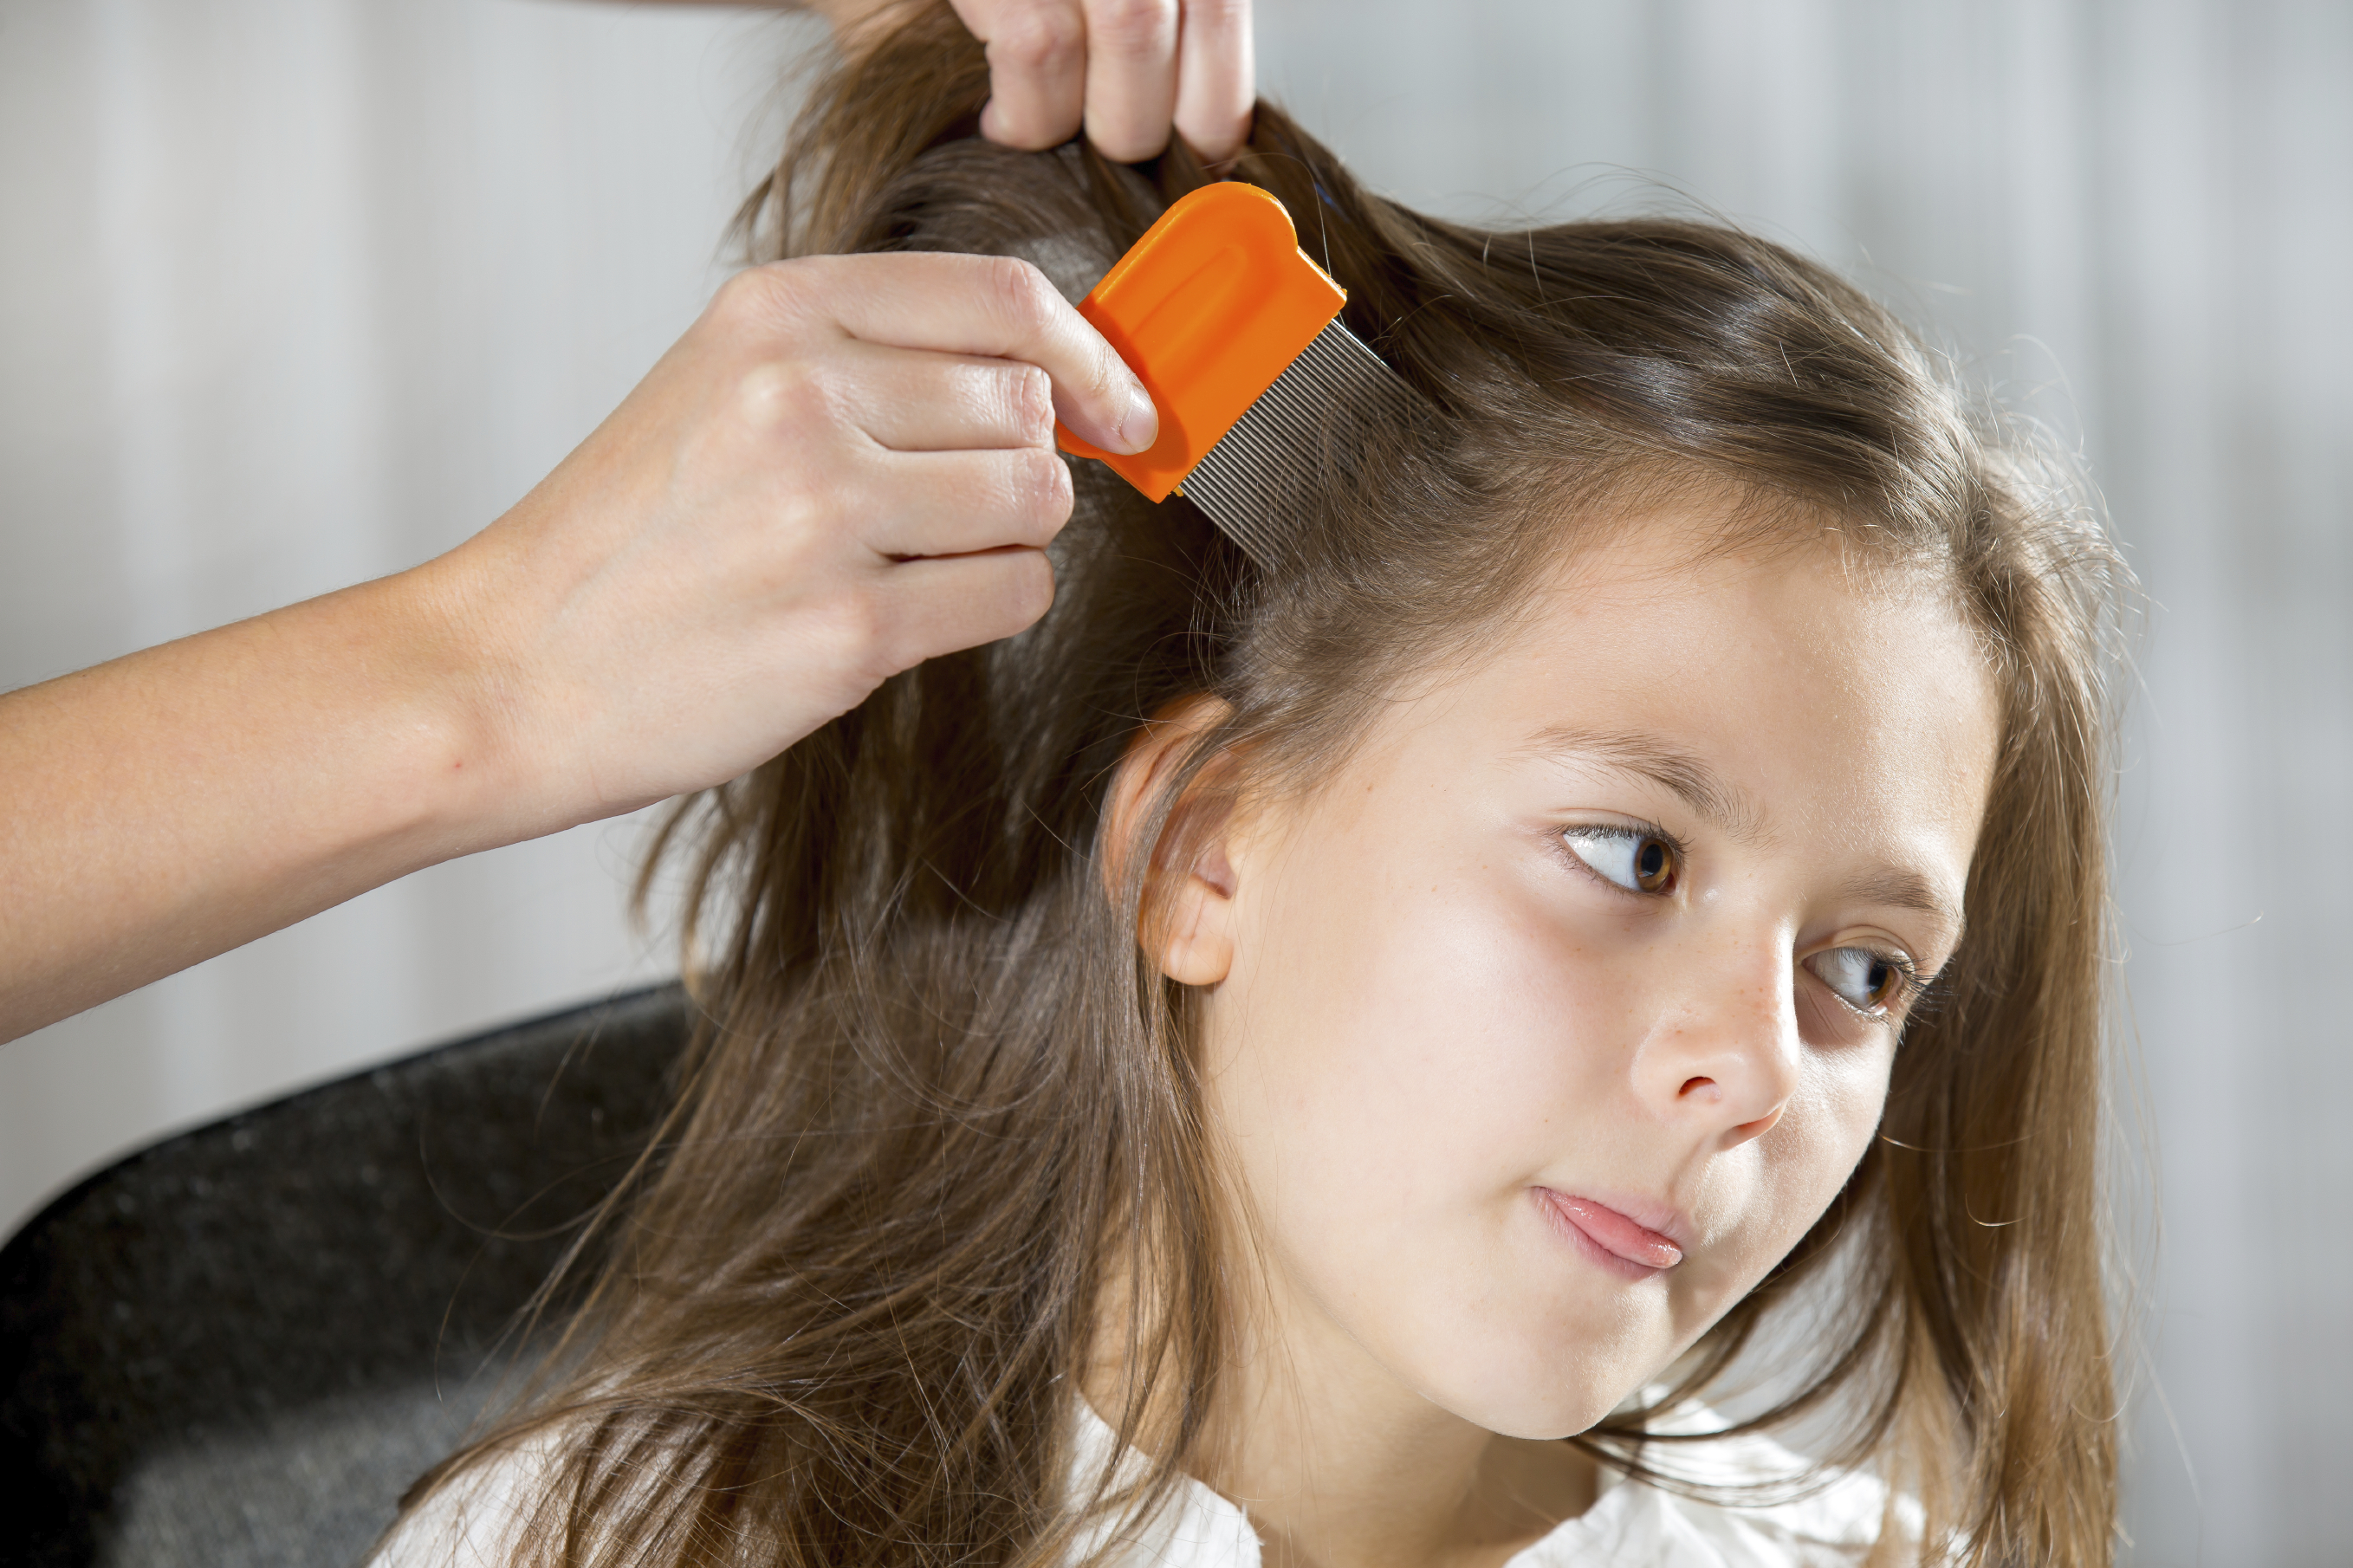 LiceGuard® Shampoo: Can it Wash Away Your Lice?